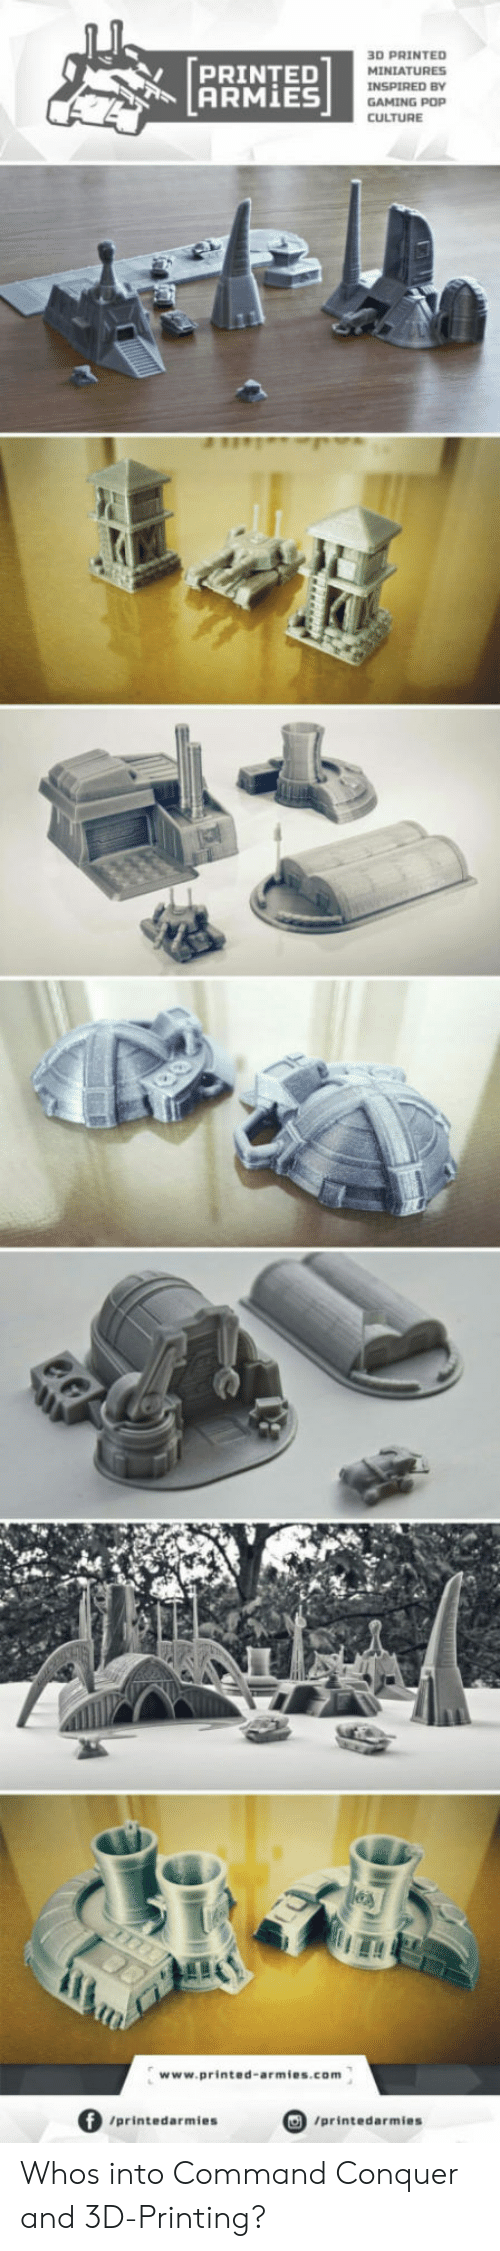 Commandeer: [pRINTED  ARMİES  3D PRINTED  MINIATURES  INSPIRED BY  GAMING POP  CULTURE  ITI  www.printed-armies.com  」  /printedarmies  /printedarmies Whos into Command  Conquer and 3D-Printing?